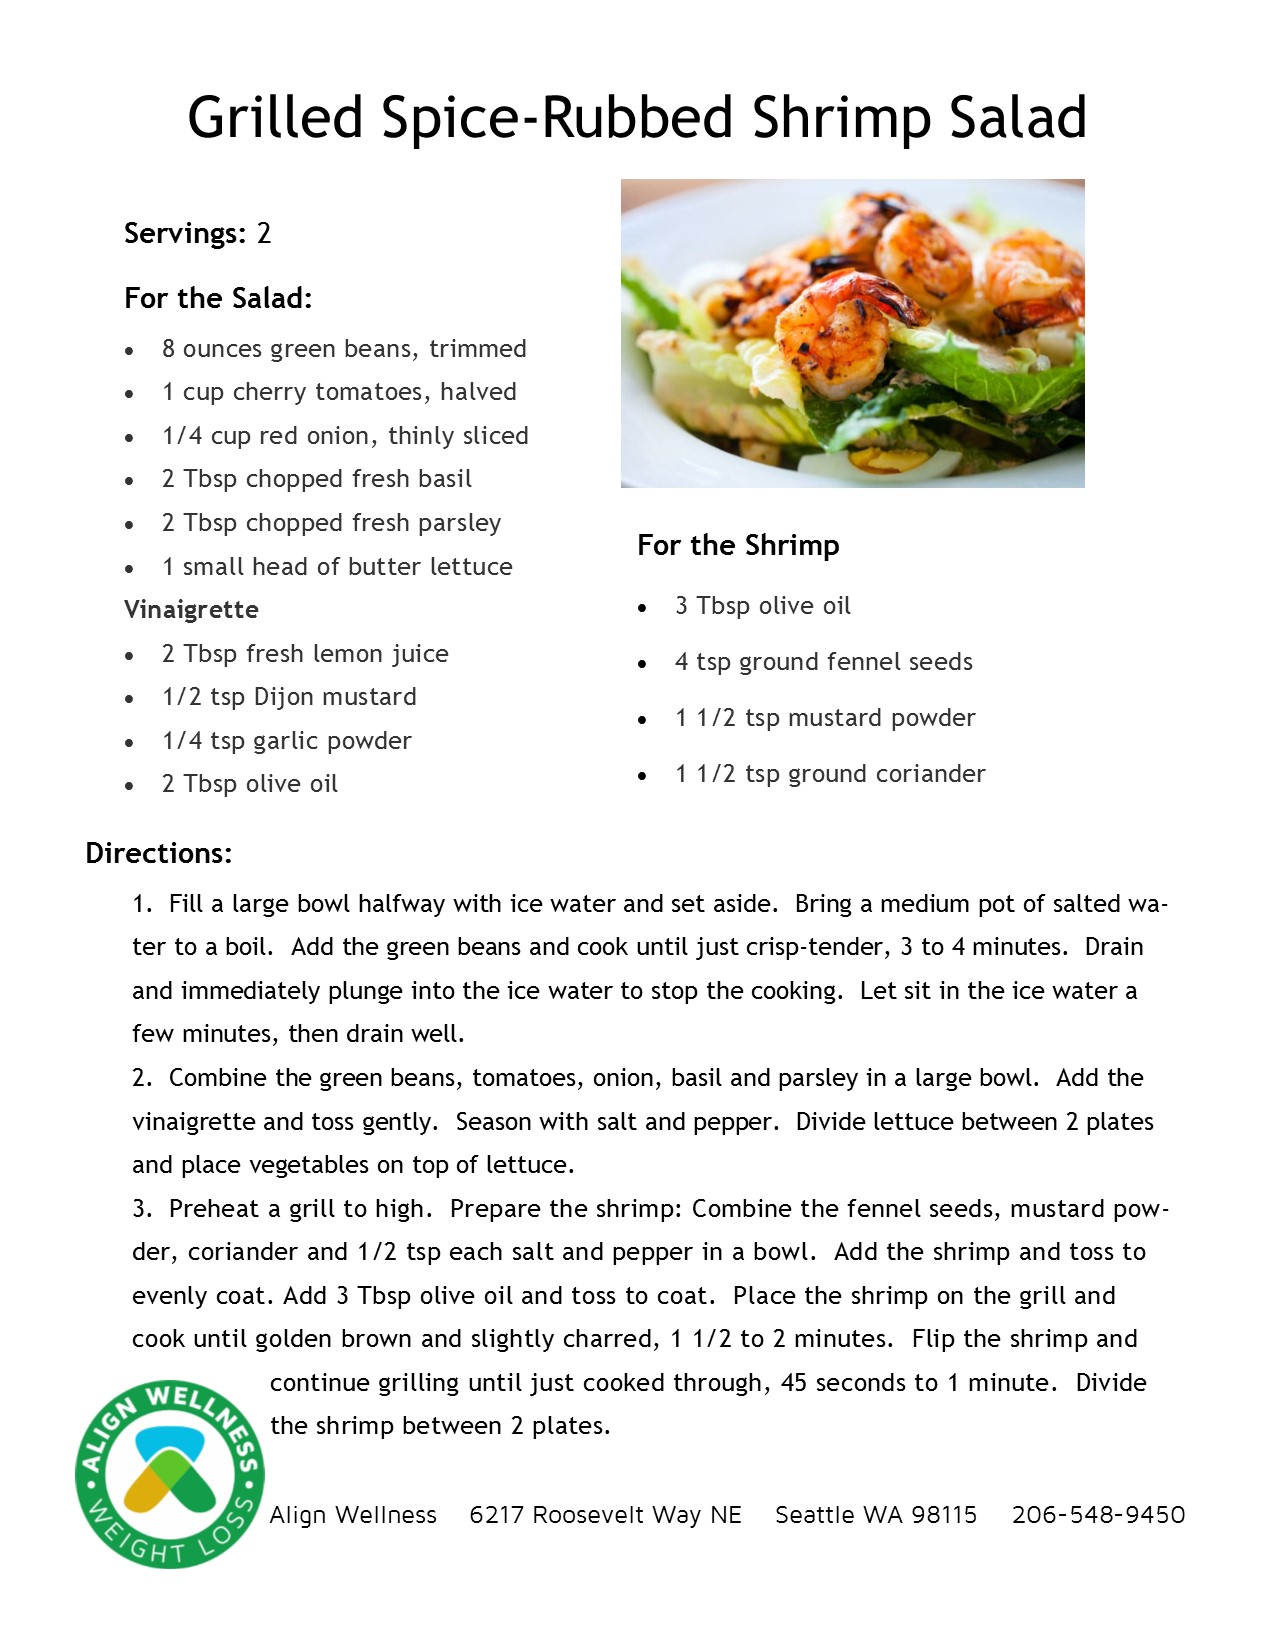 Grilled Spice-Rubbed Shrimp Salad Ideal Protein Recipe